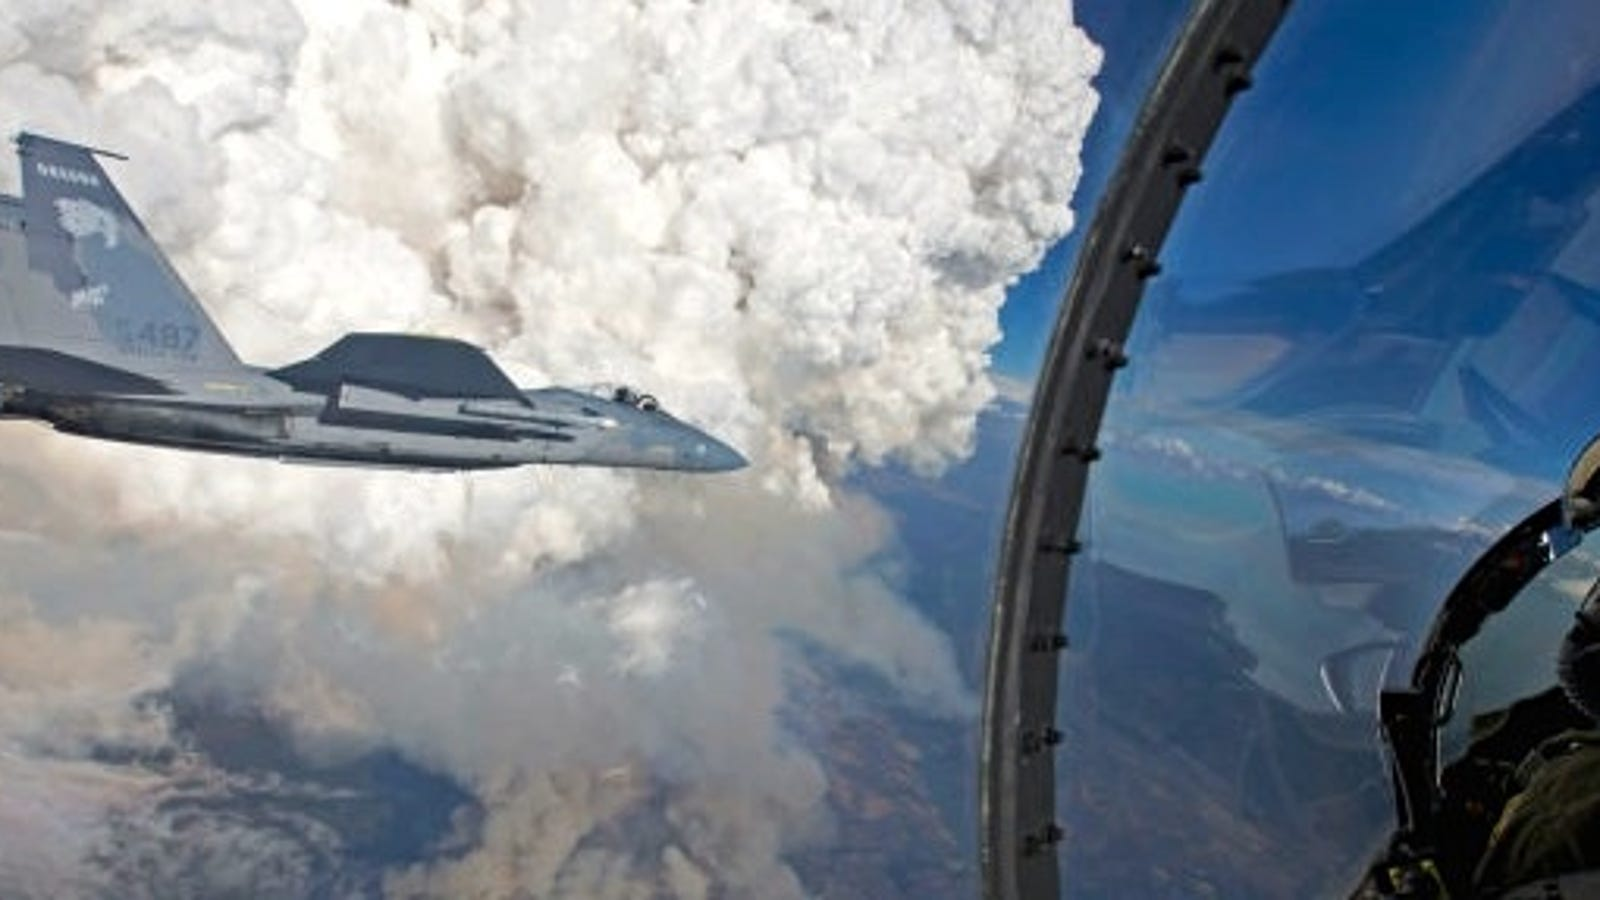 These Photos Of F15s Flying Near Towering Forest Fires Are Totally Nuts